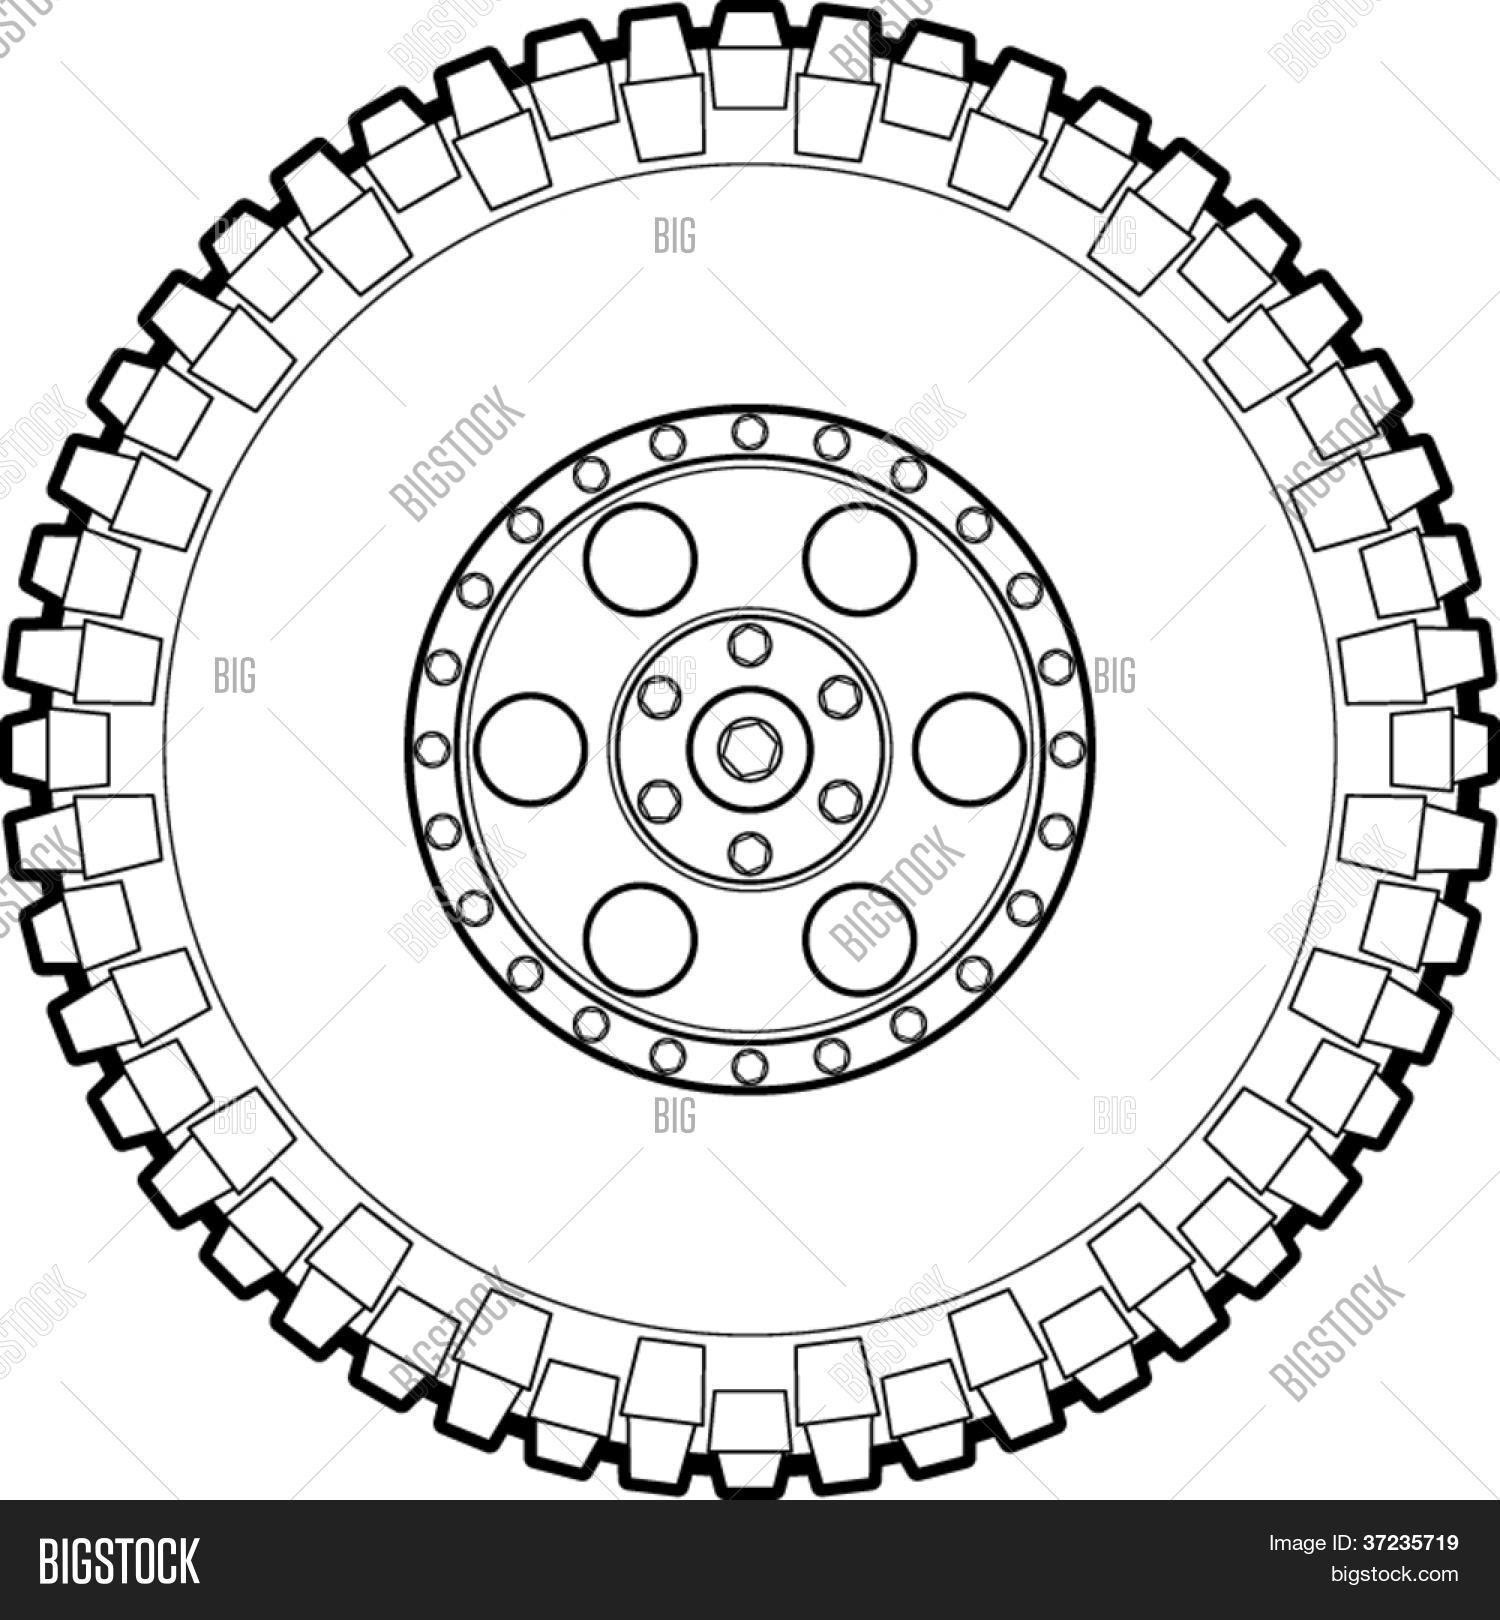 Image Result For Tire Sizes That